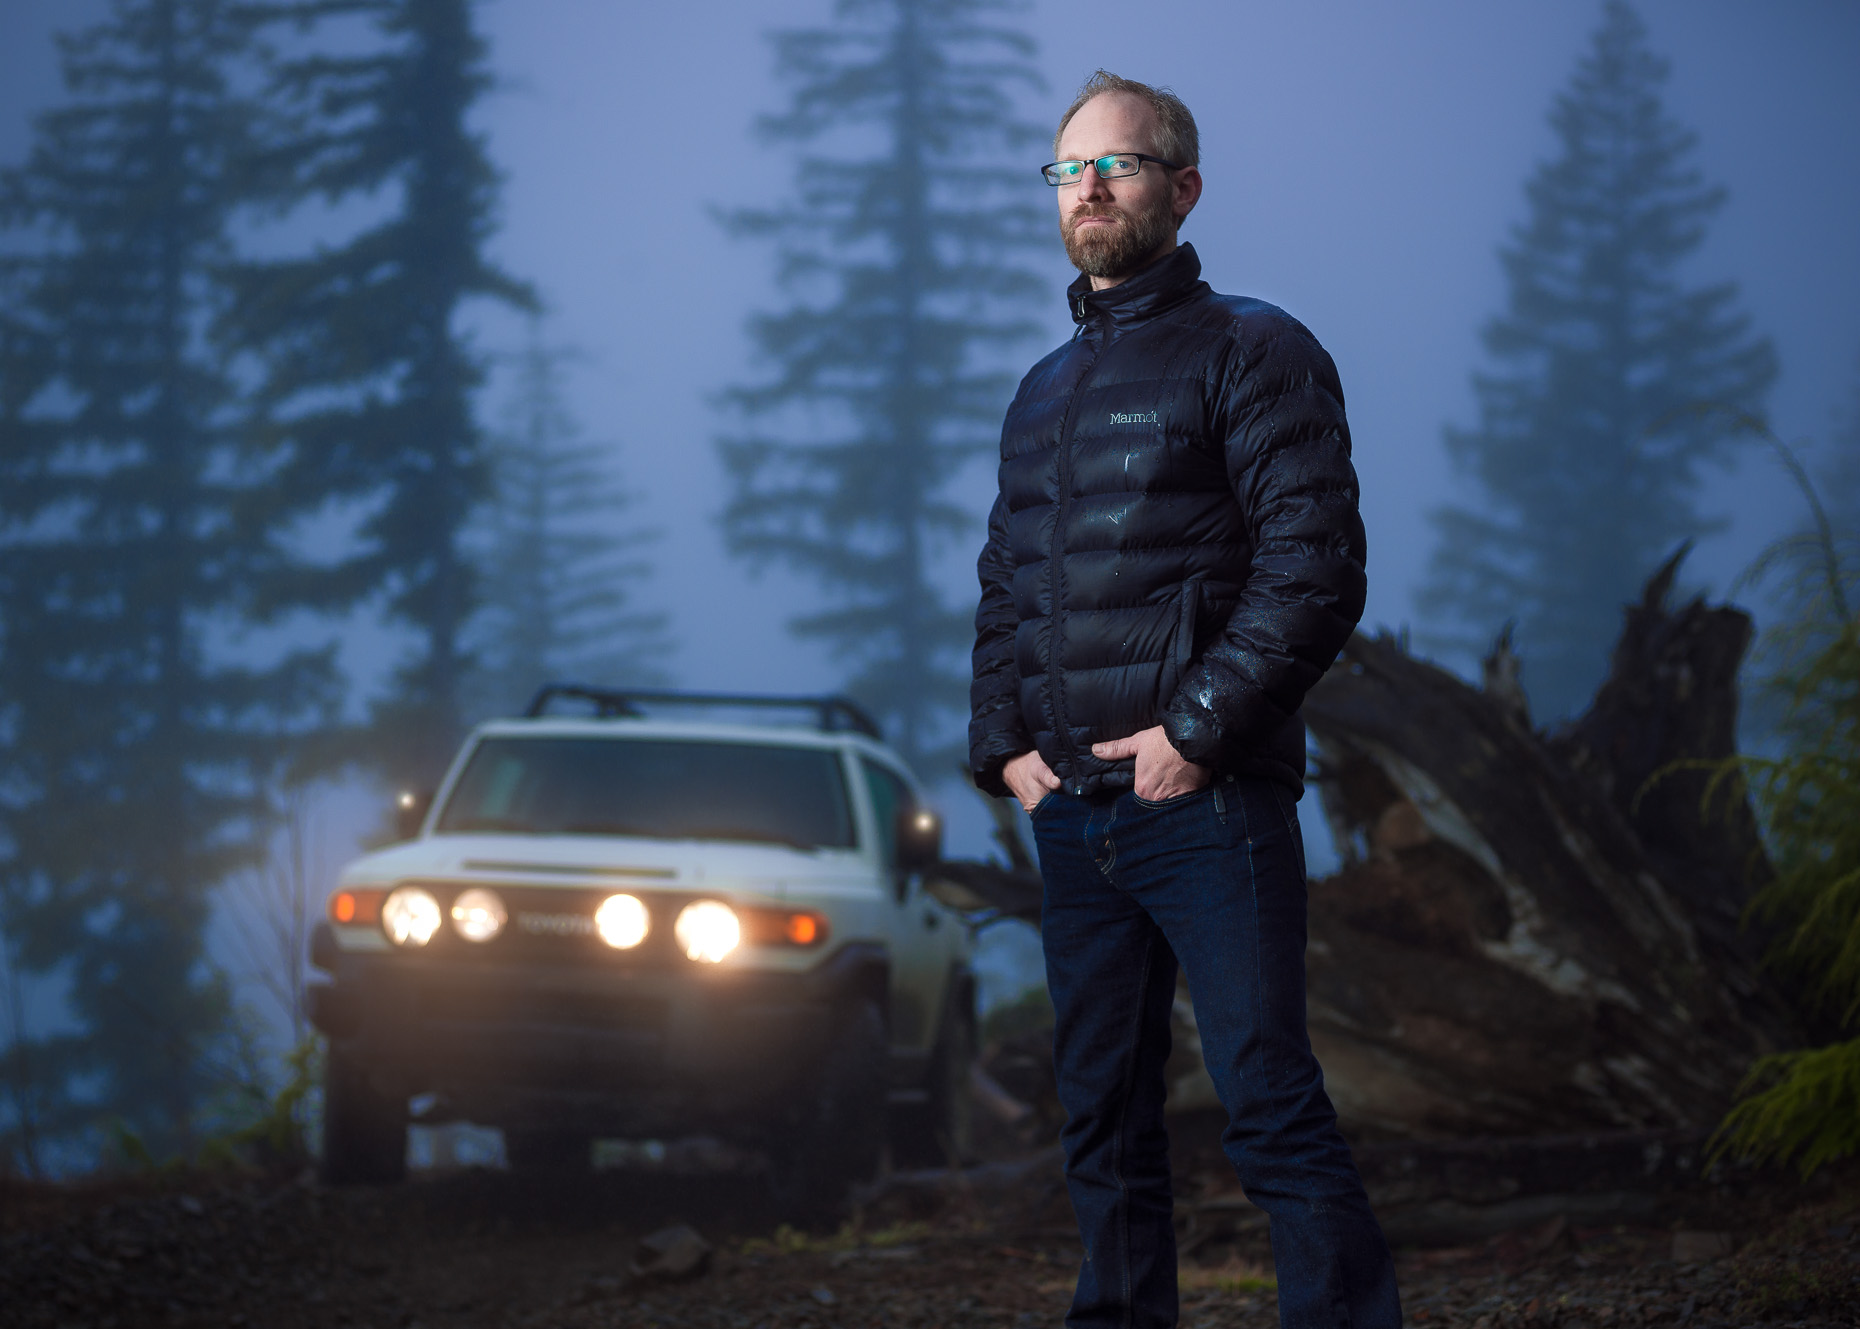 Dramatic twilight portrait in fog of guy and his SUV